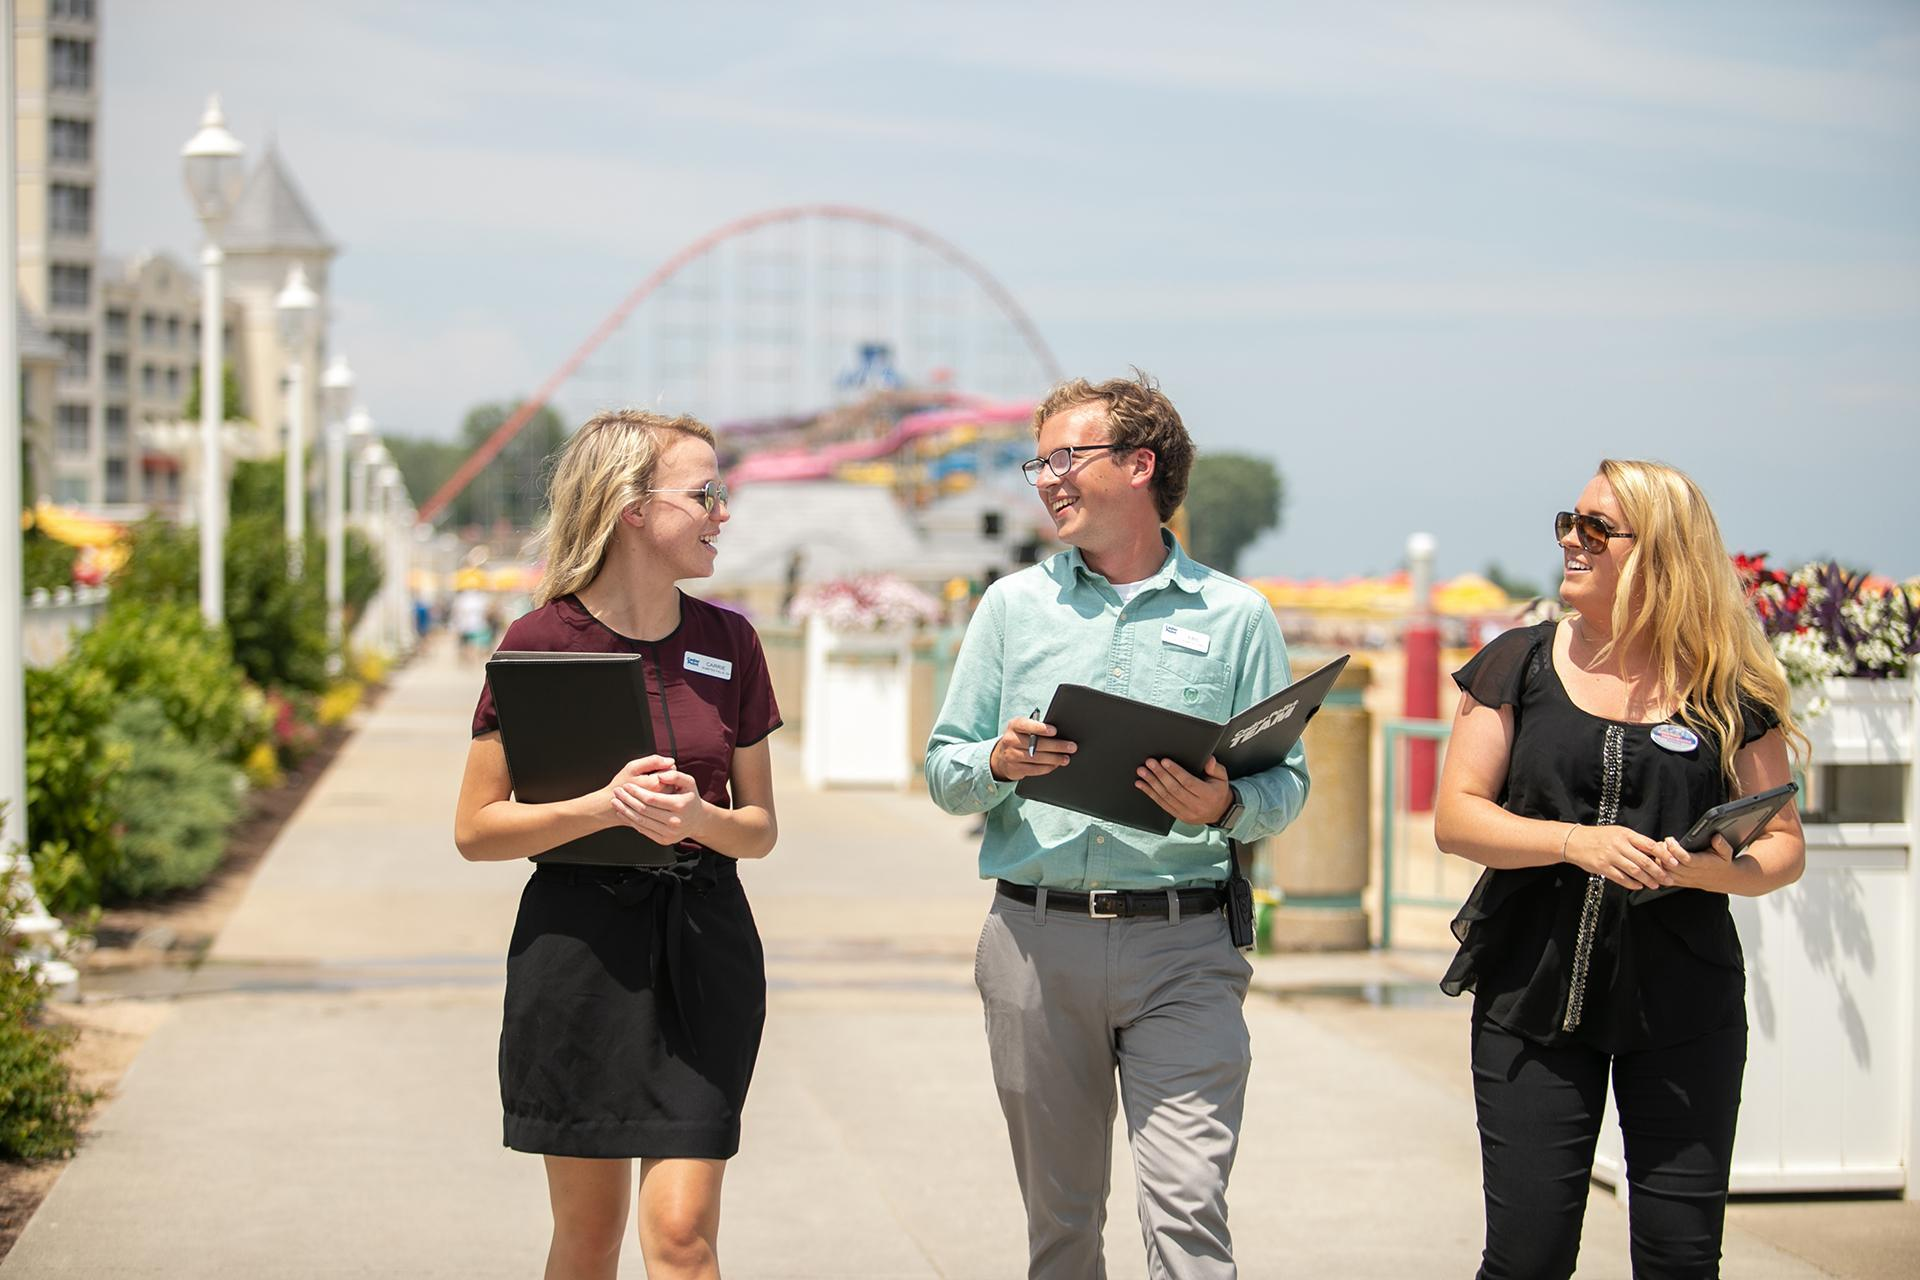 BGSU resort and attraction management students walk through the Cedar Point resort and theme park on a sunny day.